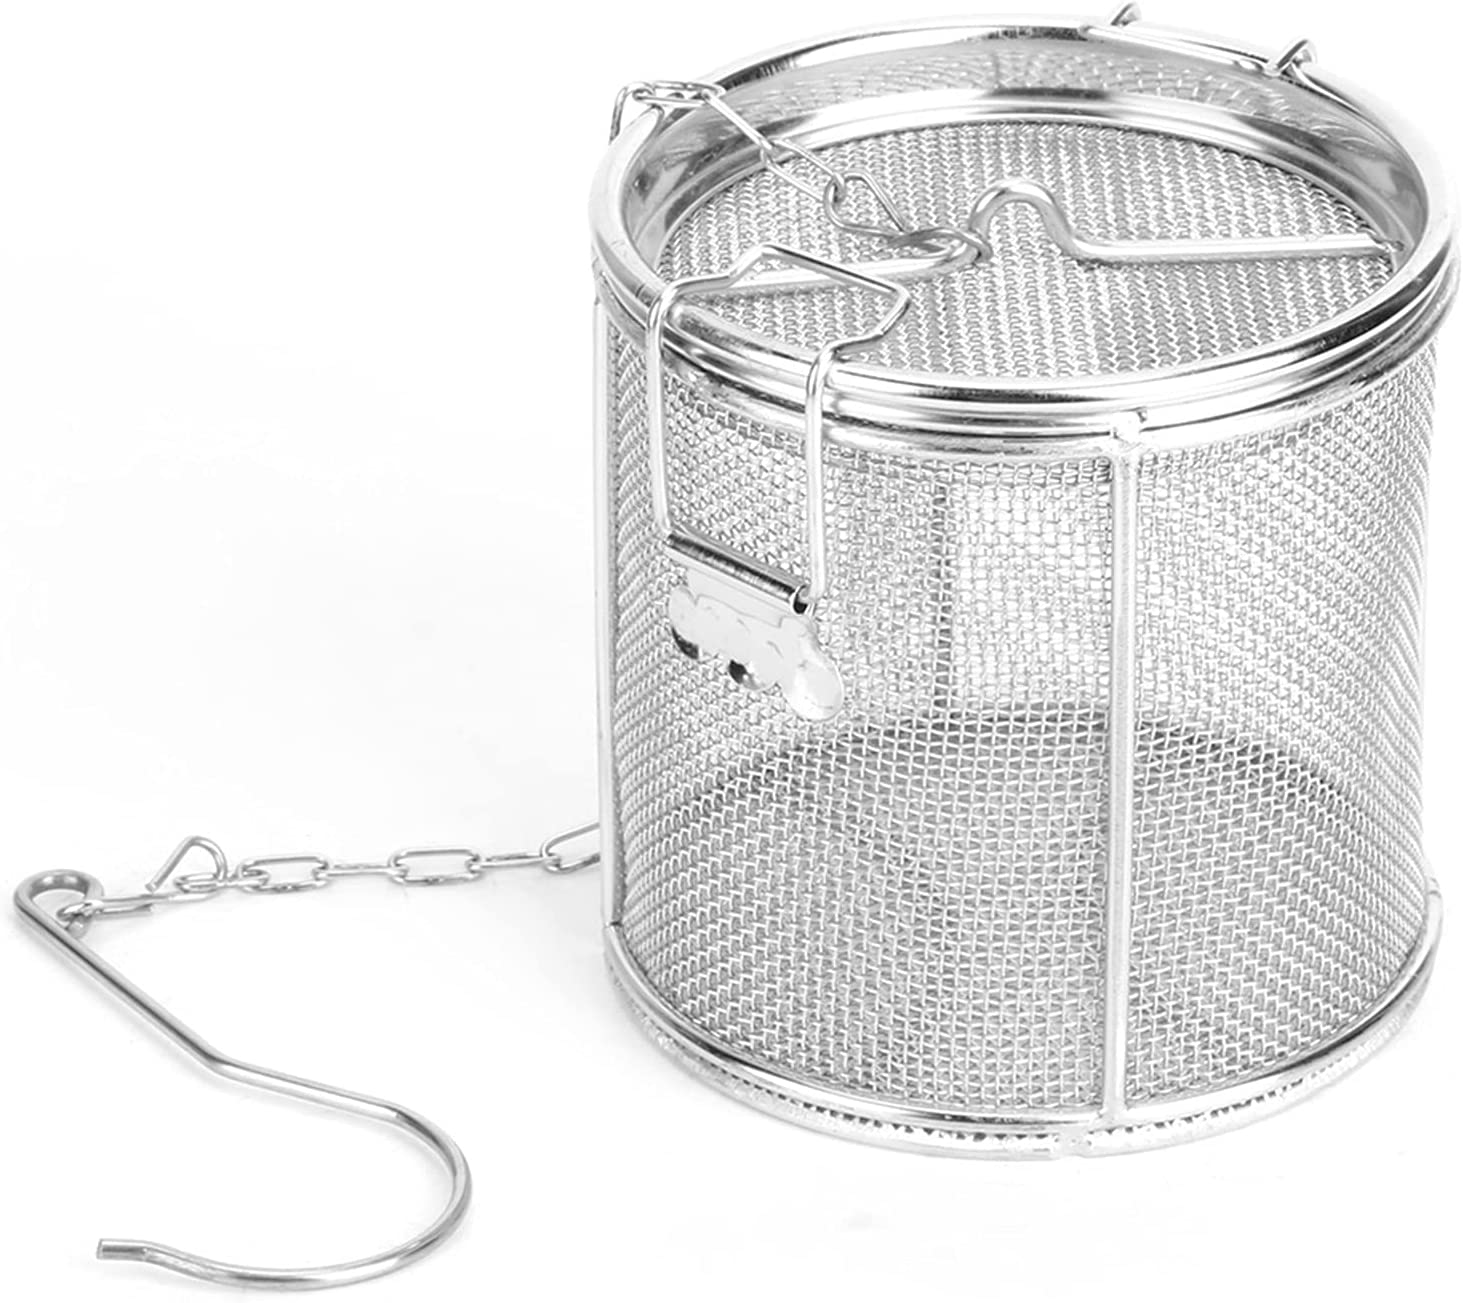 Tea Max 85% OFF Ball Strainer Stainless Steel Seperation Seasonings Bas Columbus Mall Soup